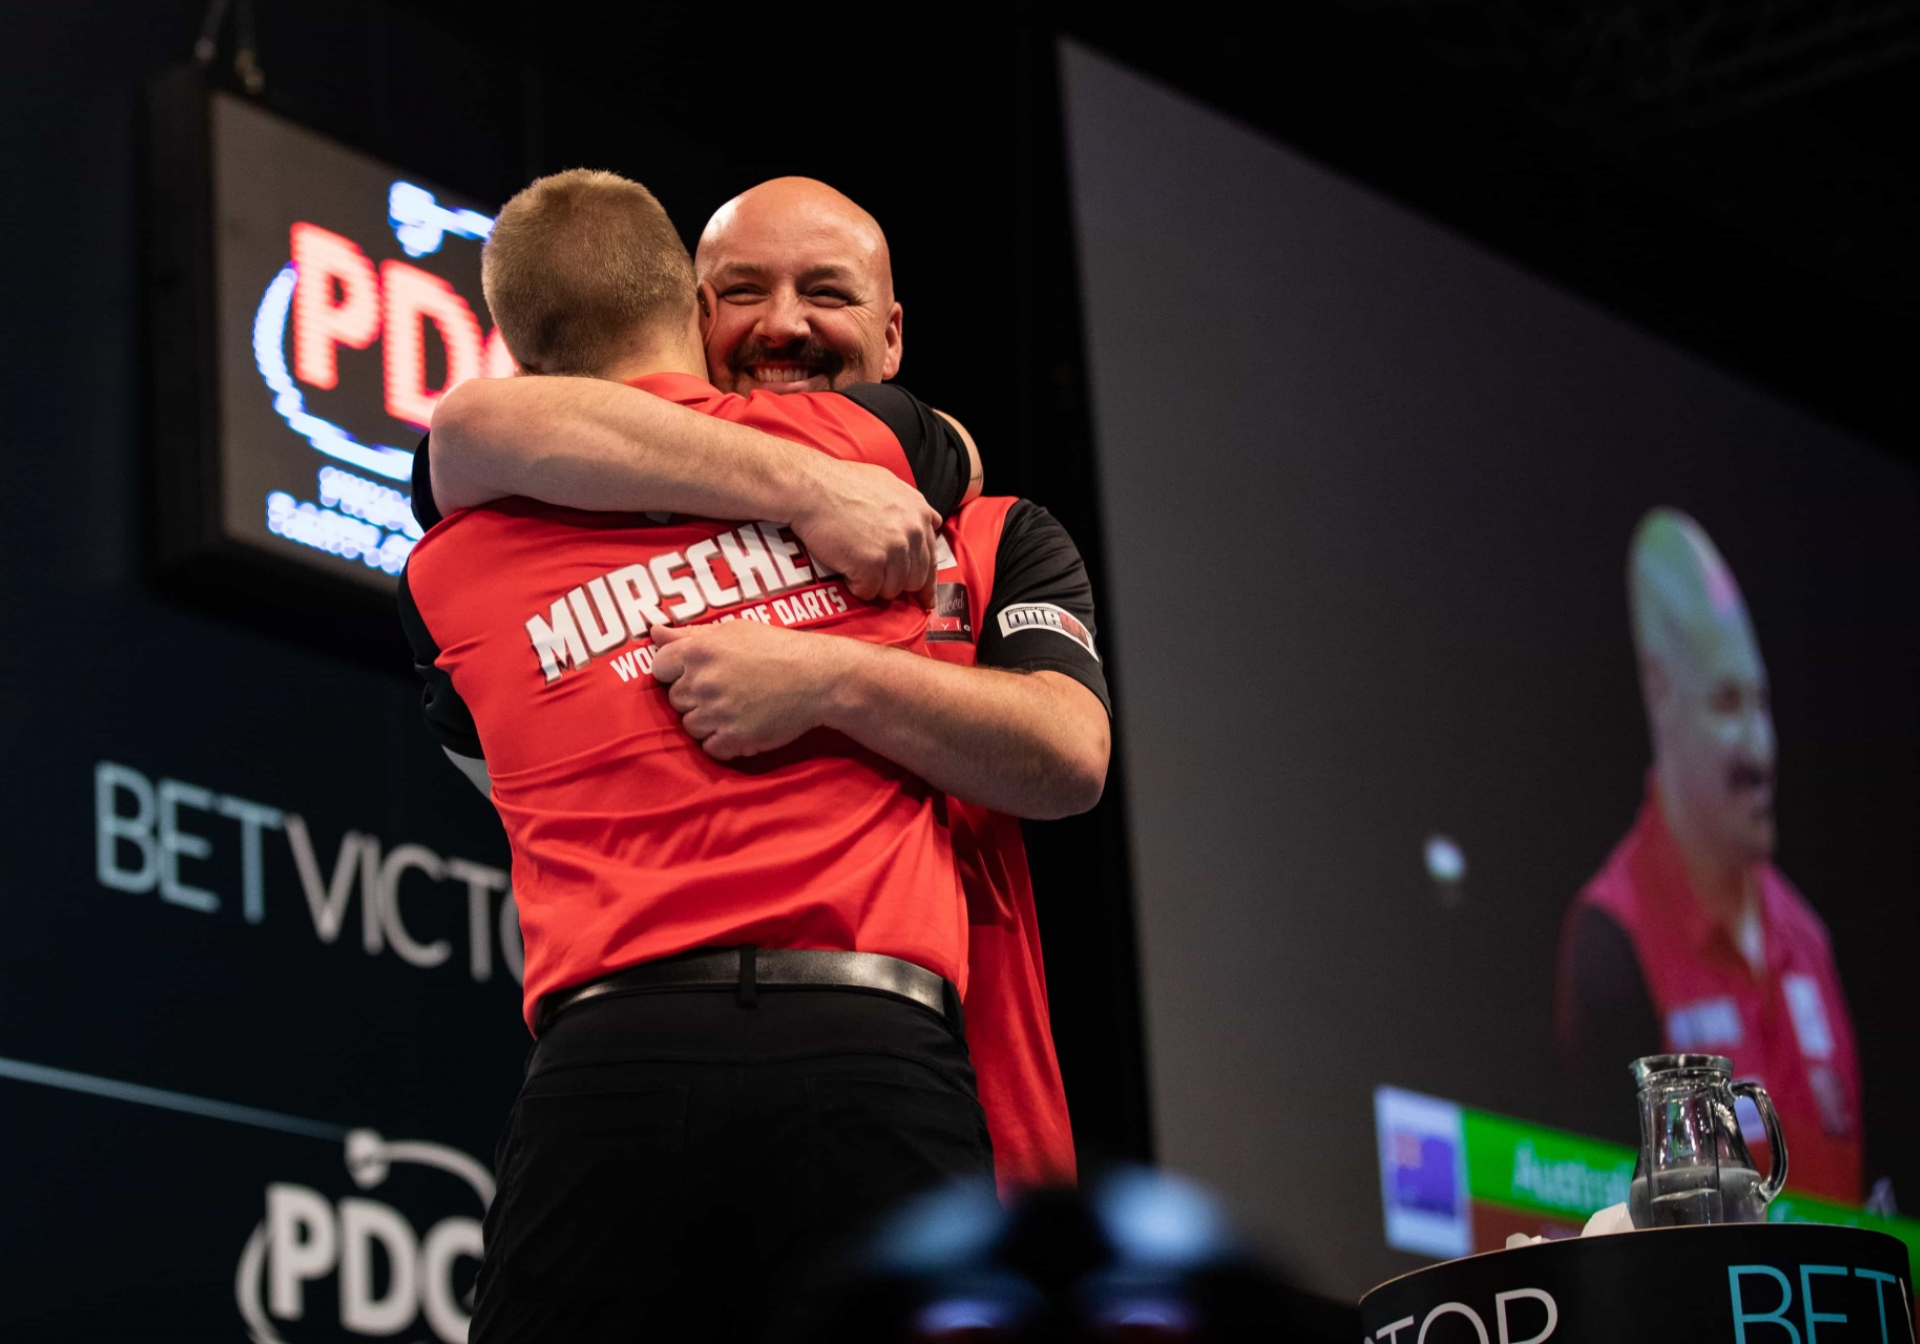 Canada's Dawson Murschell and Jim Long - BetVictor World Cup of Darts (Stefan Strassenberg)